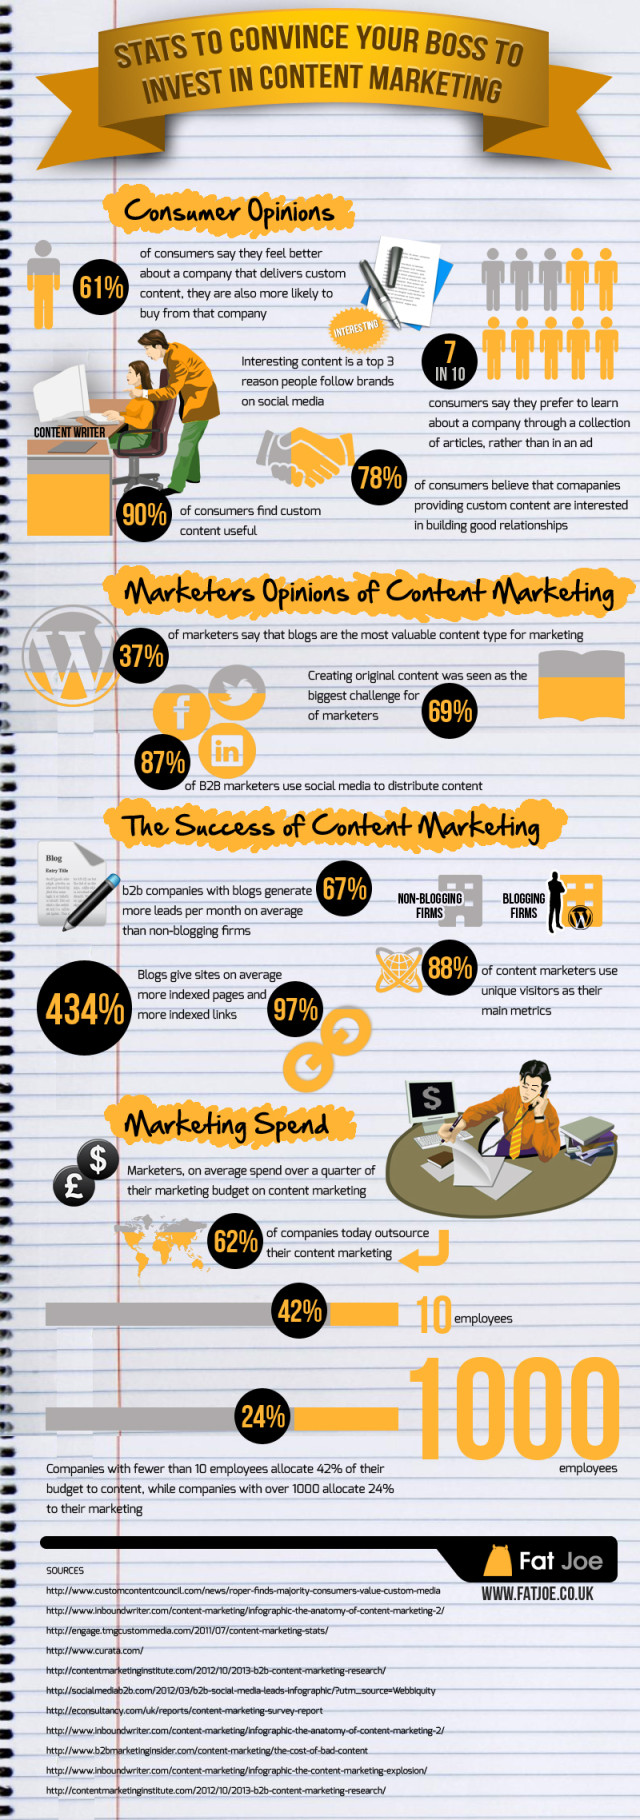 invest-content-marketing